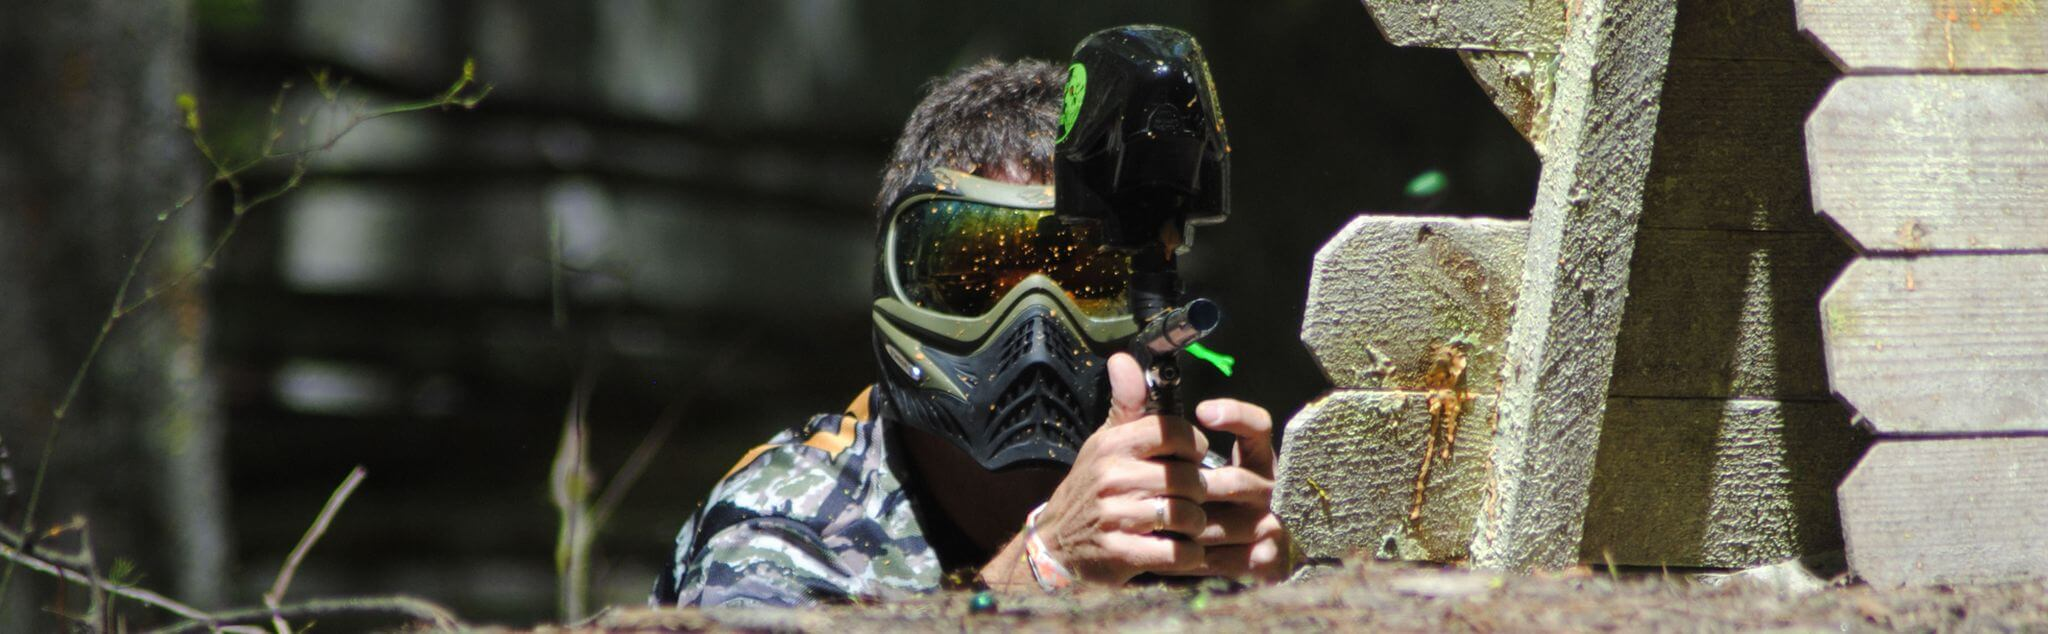 Paintball a Varese